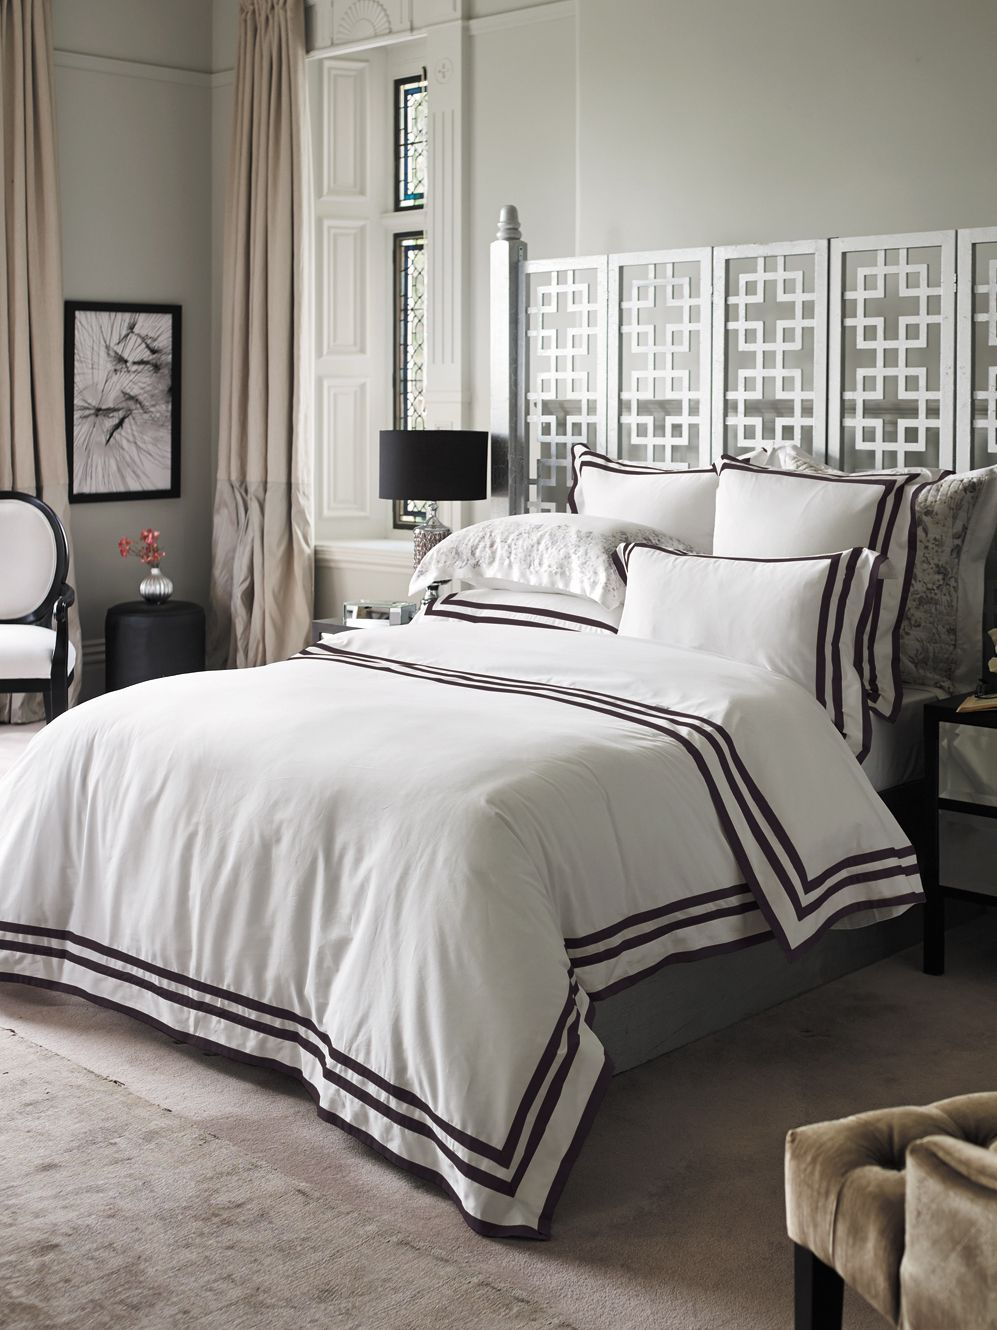 Holroyd ebony double fitted sheet timeless look